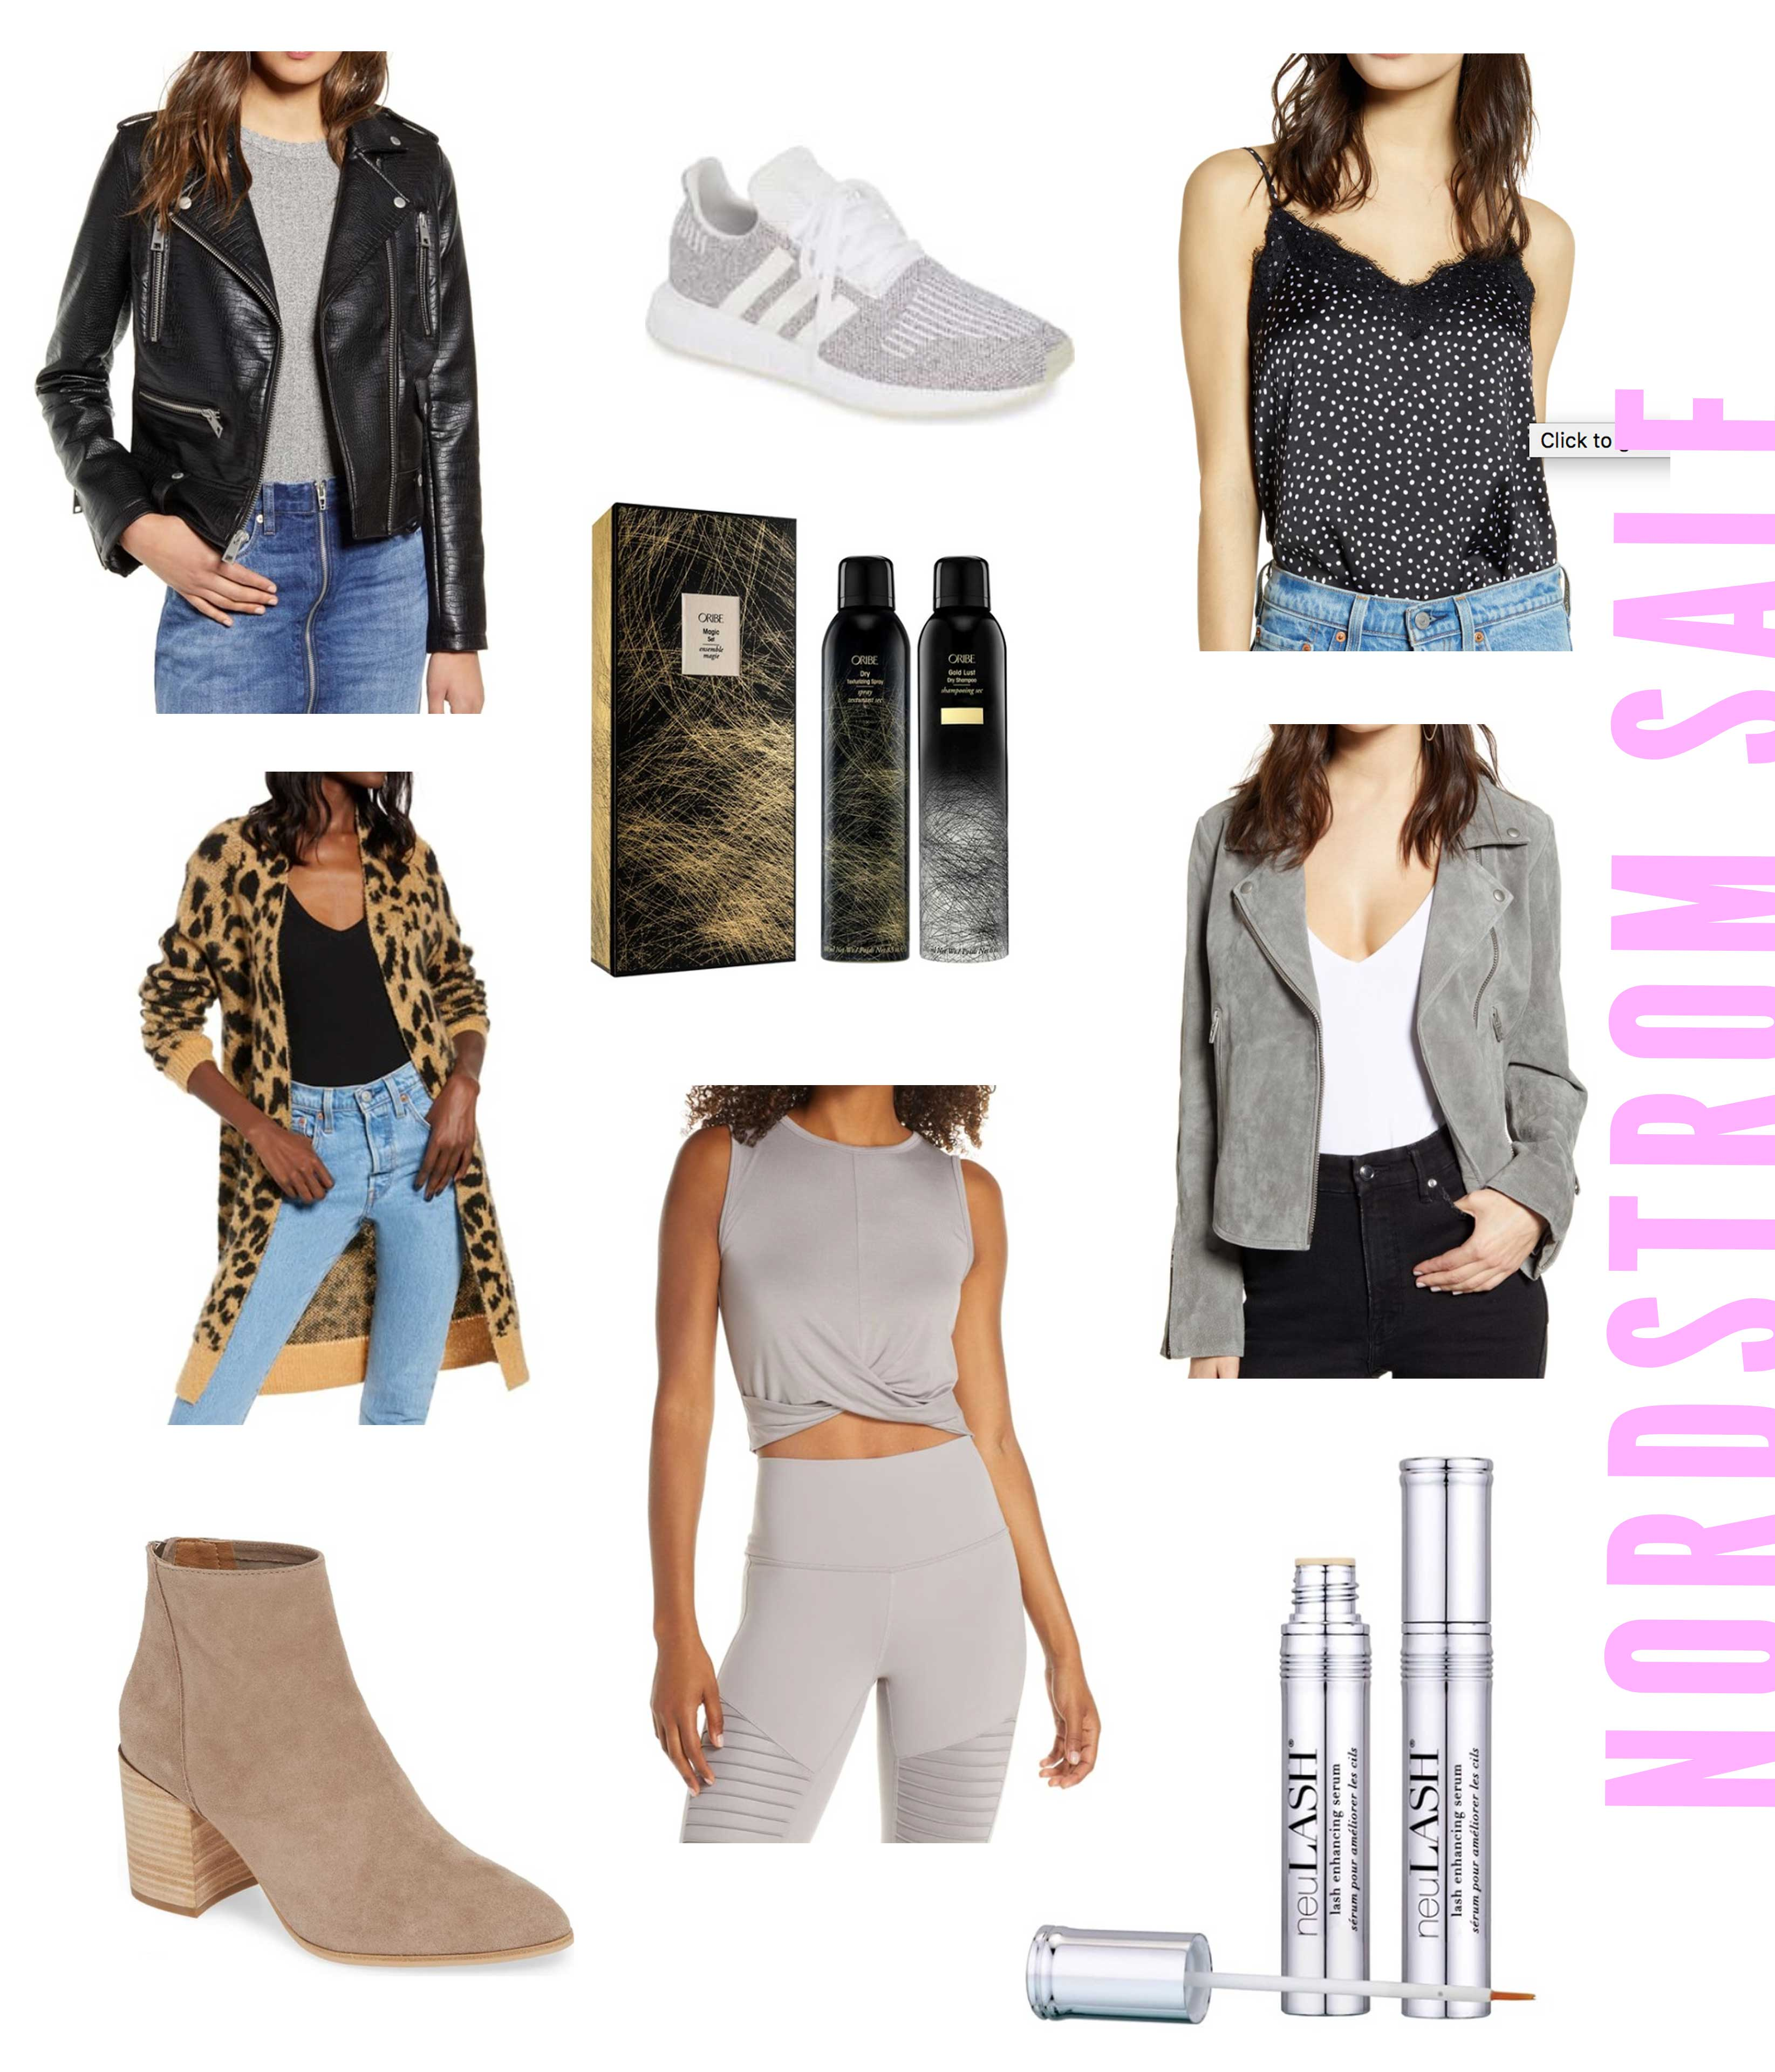 What's in my cart from the 2019 Nordstrom Anniversary Sale